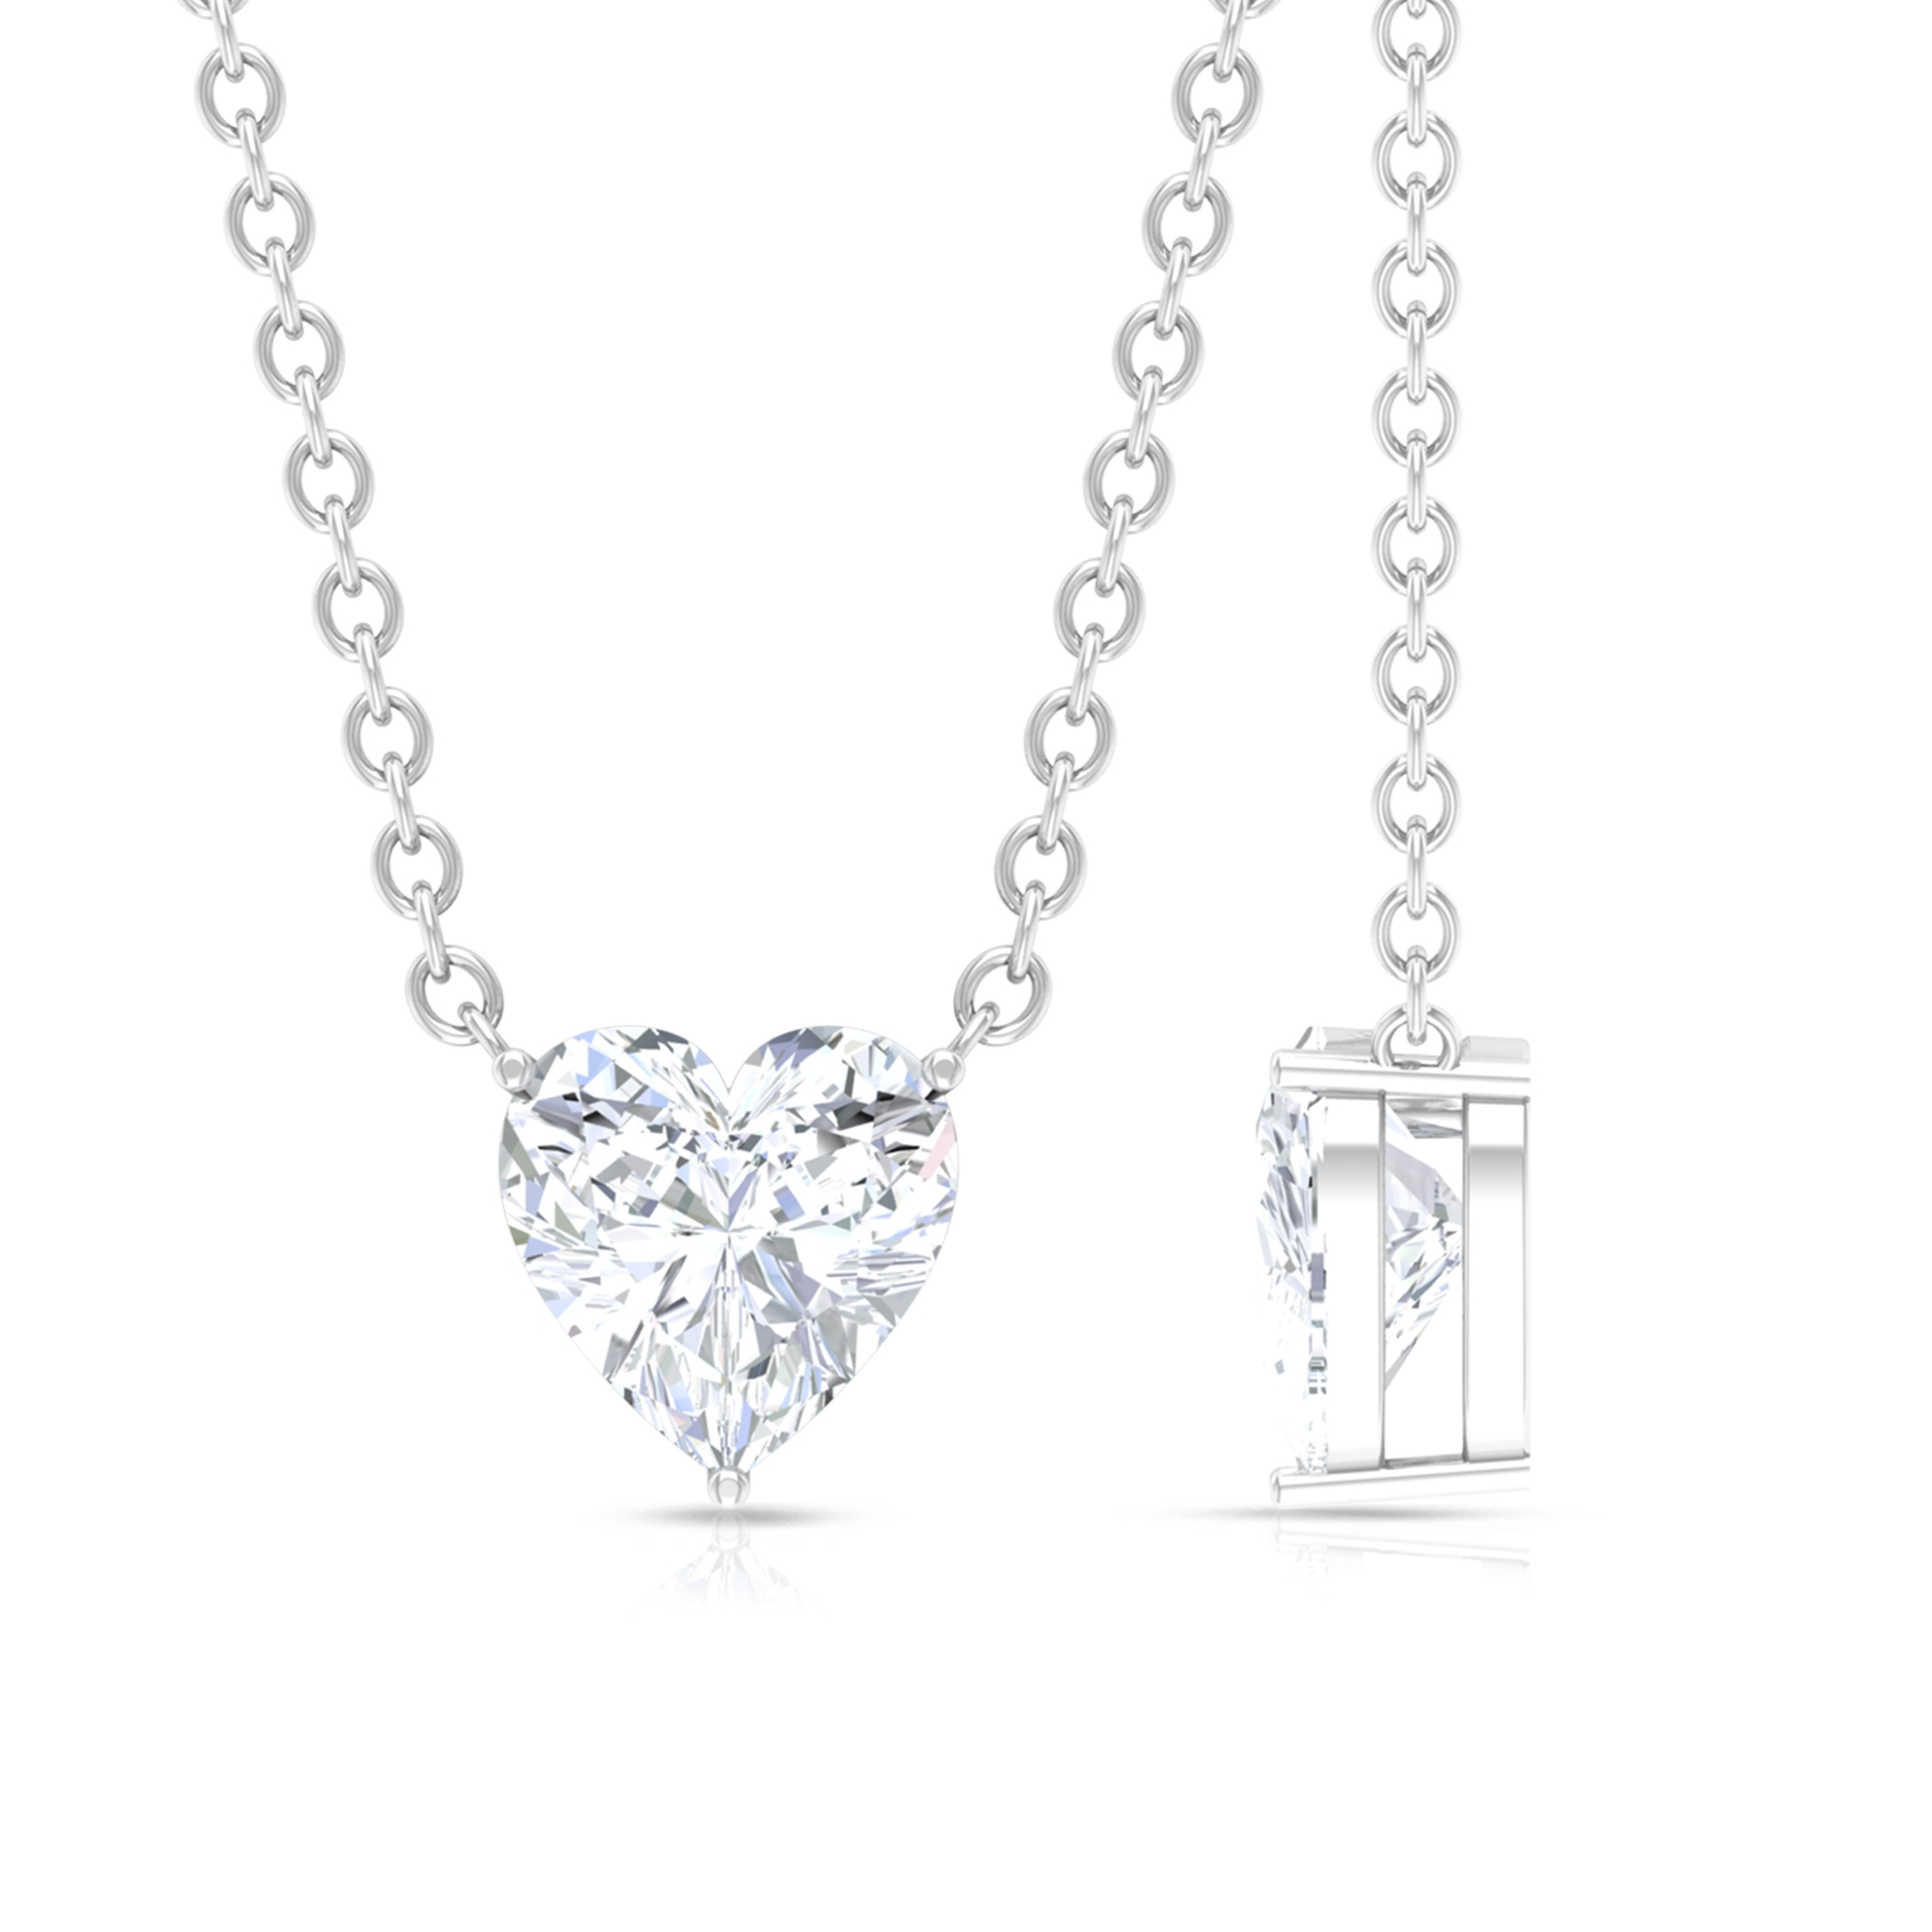 5 MM Heart Shape Diamond Solitaire Necklace in Prong Setting